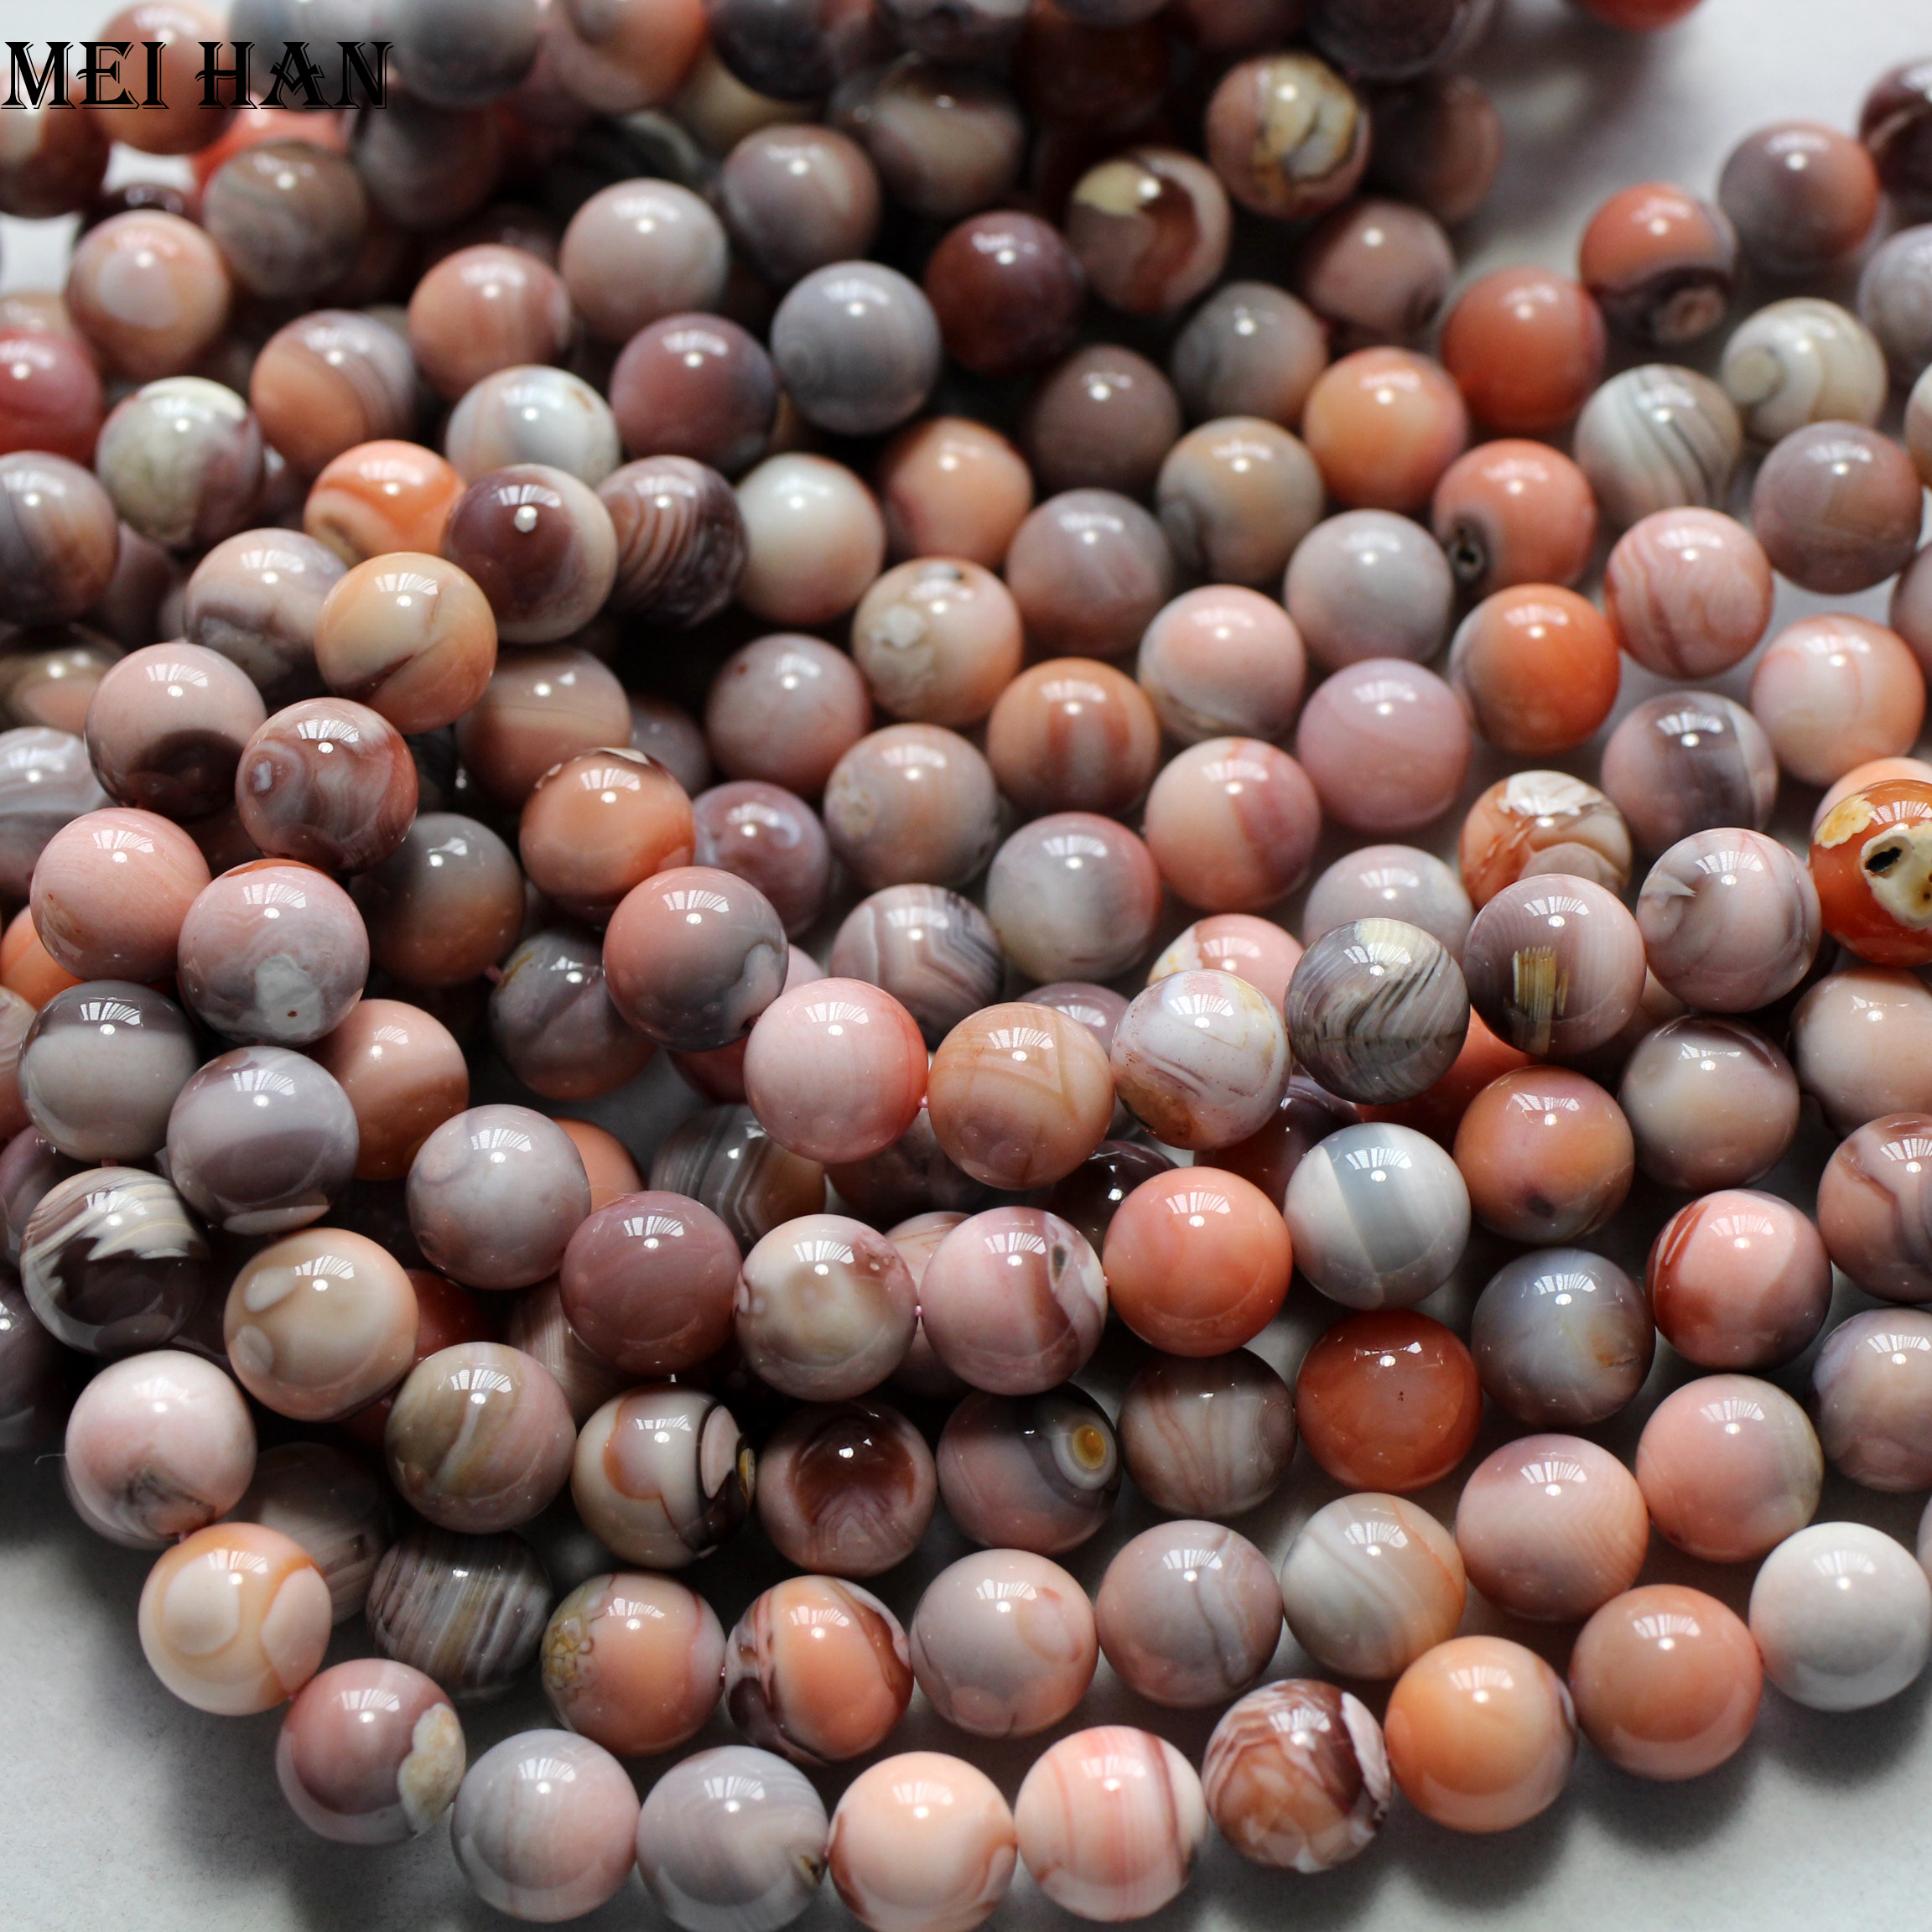 Natural 6mm Round Faceted Pink Opal Gemstone Jewelry Loose Seed Beads Strand 15/""